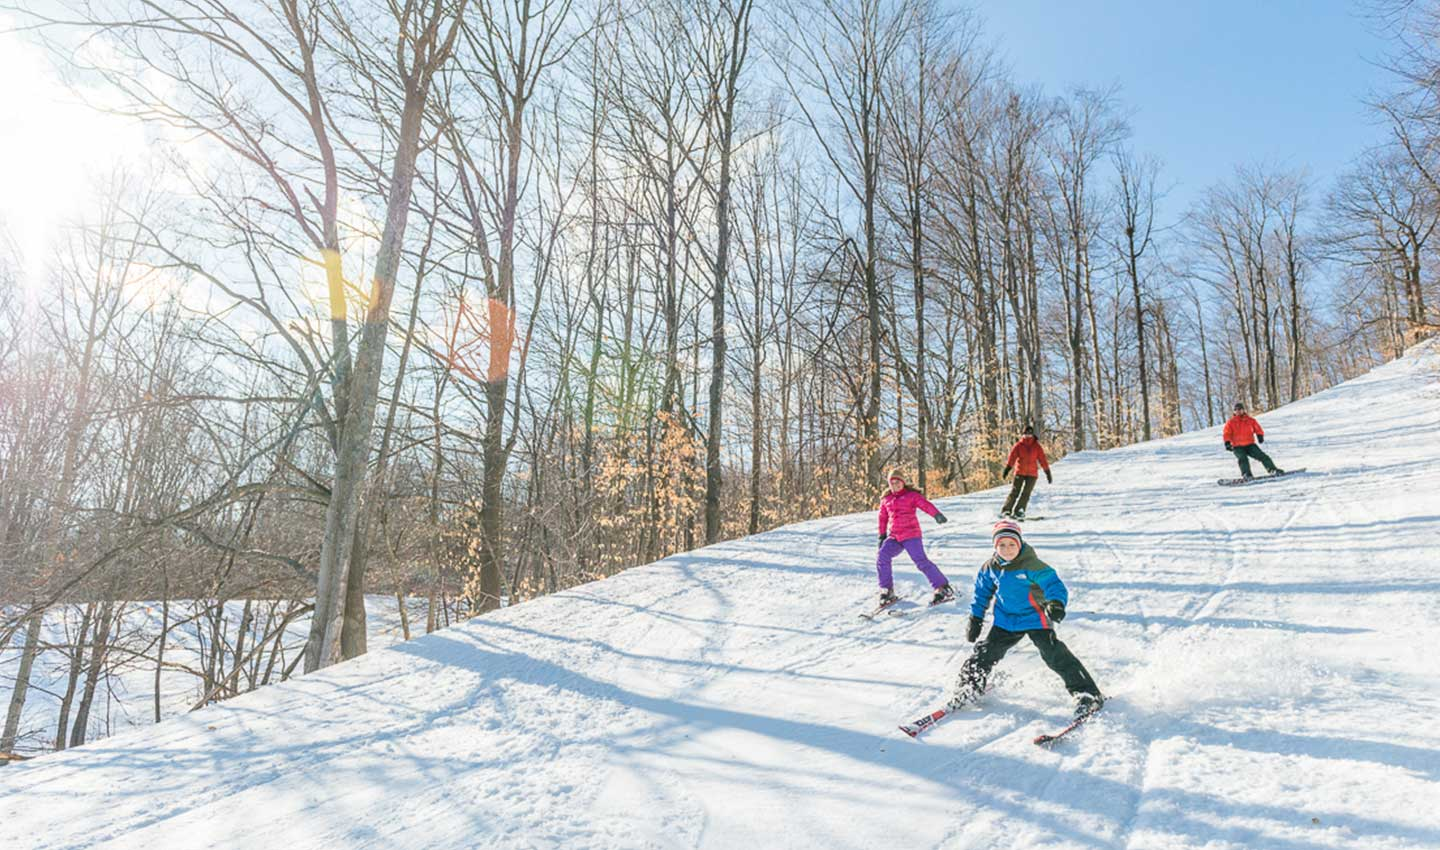 skiing & snowboarding in traverse city, mi